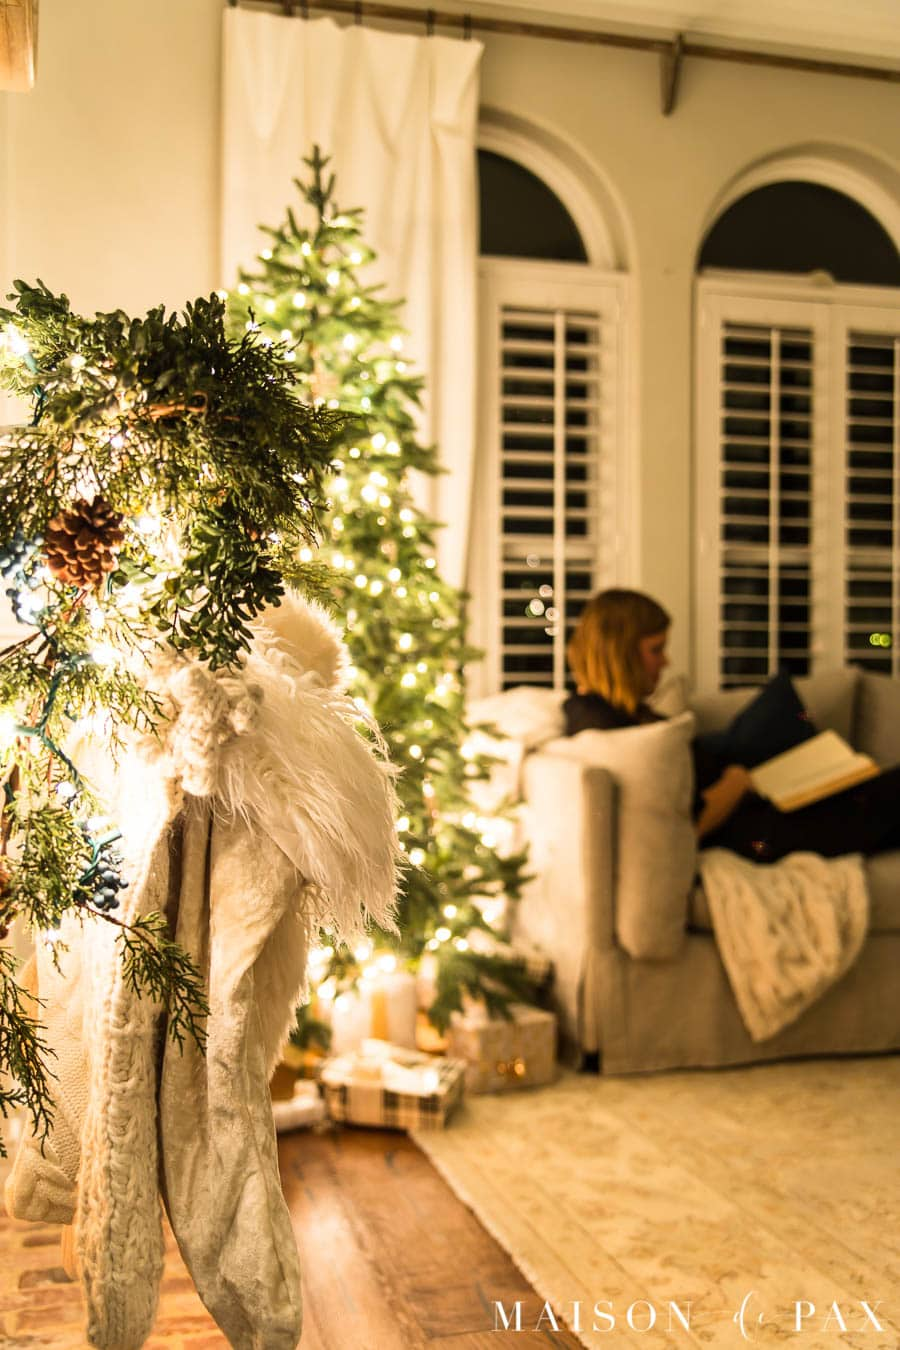 woman reading on couch beside Christmas tree at night | Maison de Pax